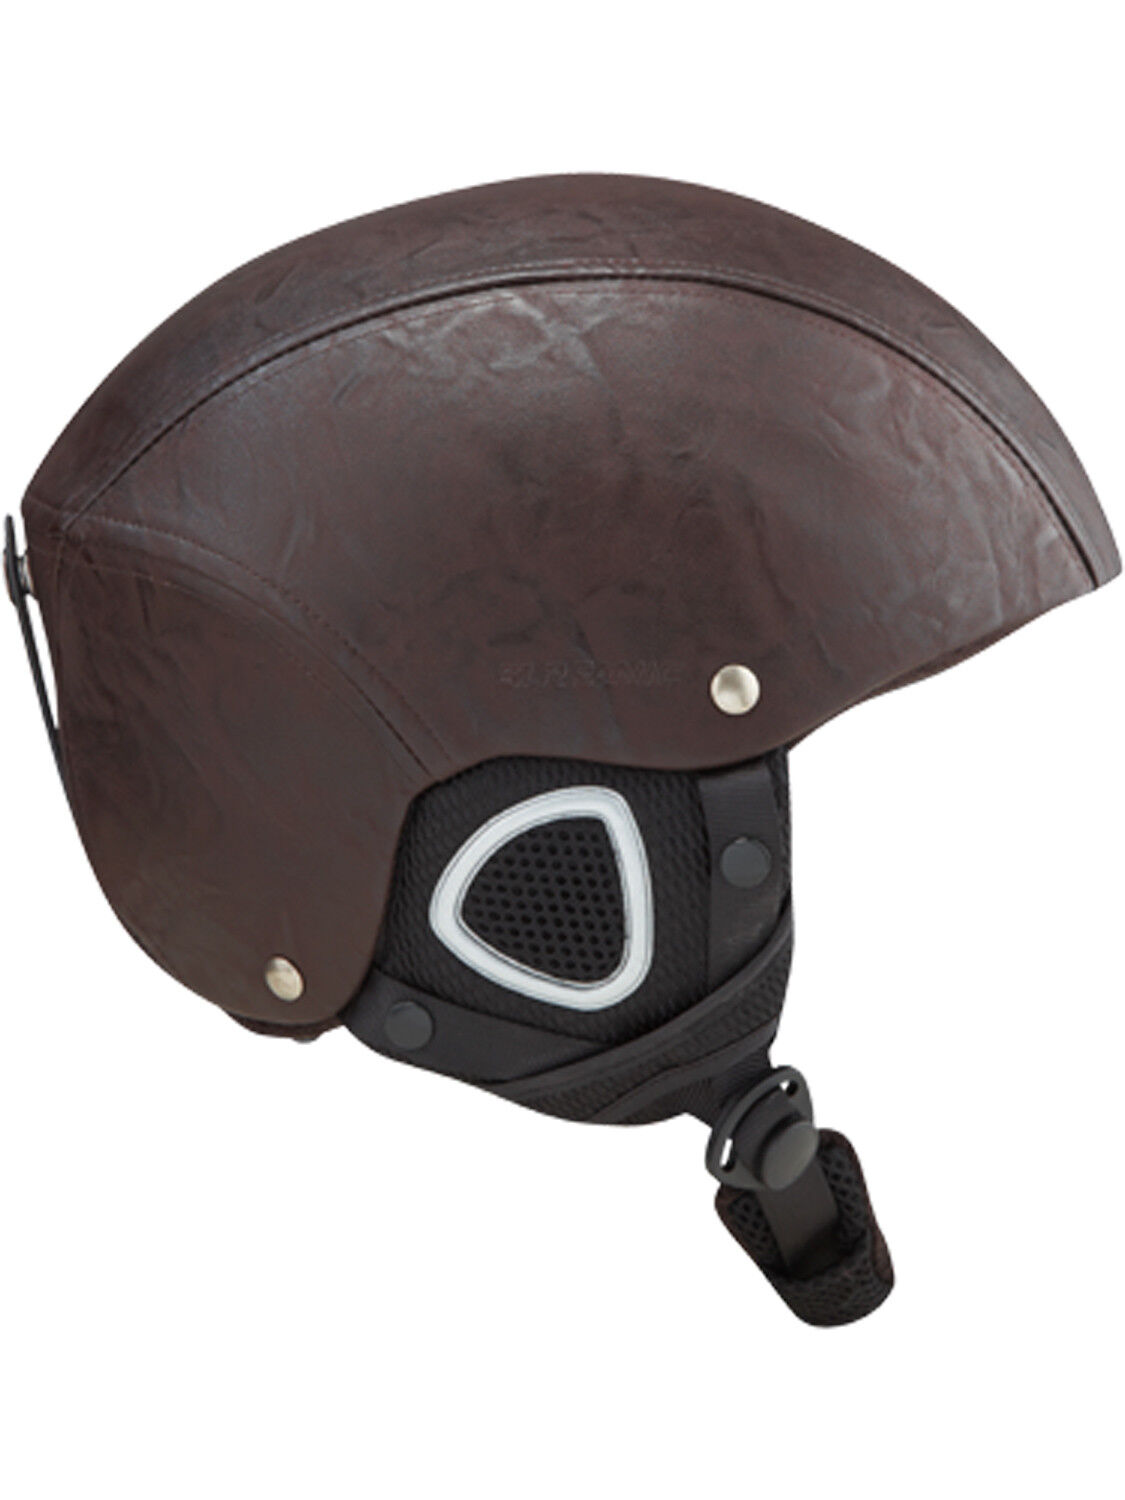 Mens Ski Snowboard Helmet New Brown 59-60CM Head Predection Adult Leather